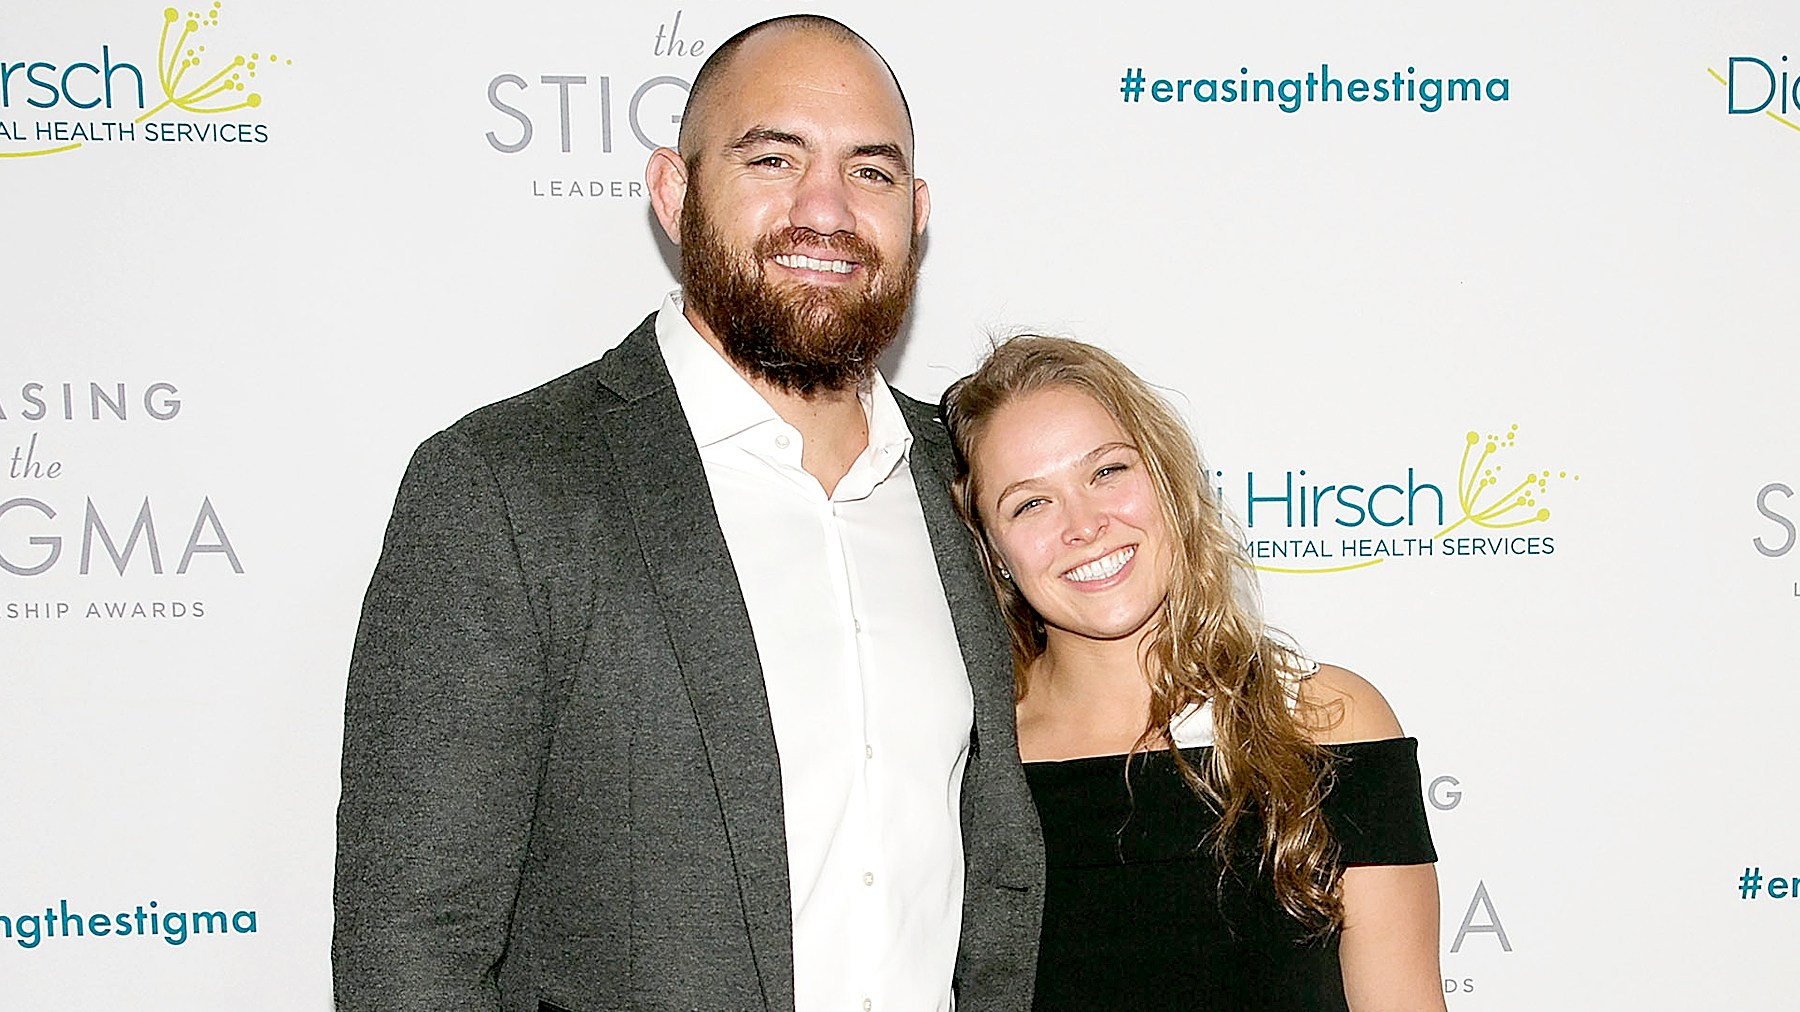 Travis Browne and Ronda Rousey arrive for the 20th Anniversary Erasing The Stigma Leadership Awards at The Beverly Hilton Hotel on April 28, 2016 in Beverly Hills, California.